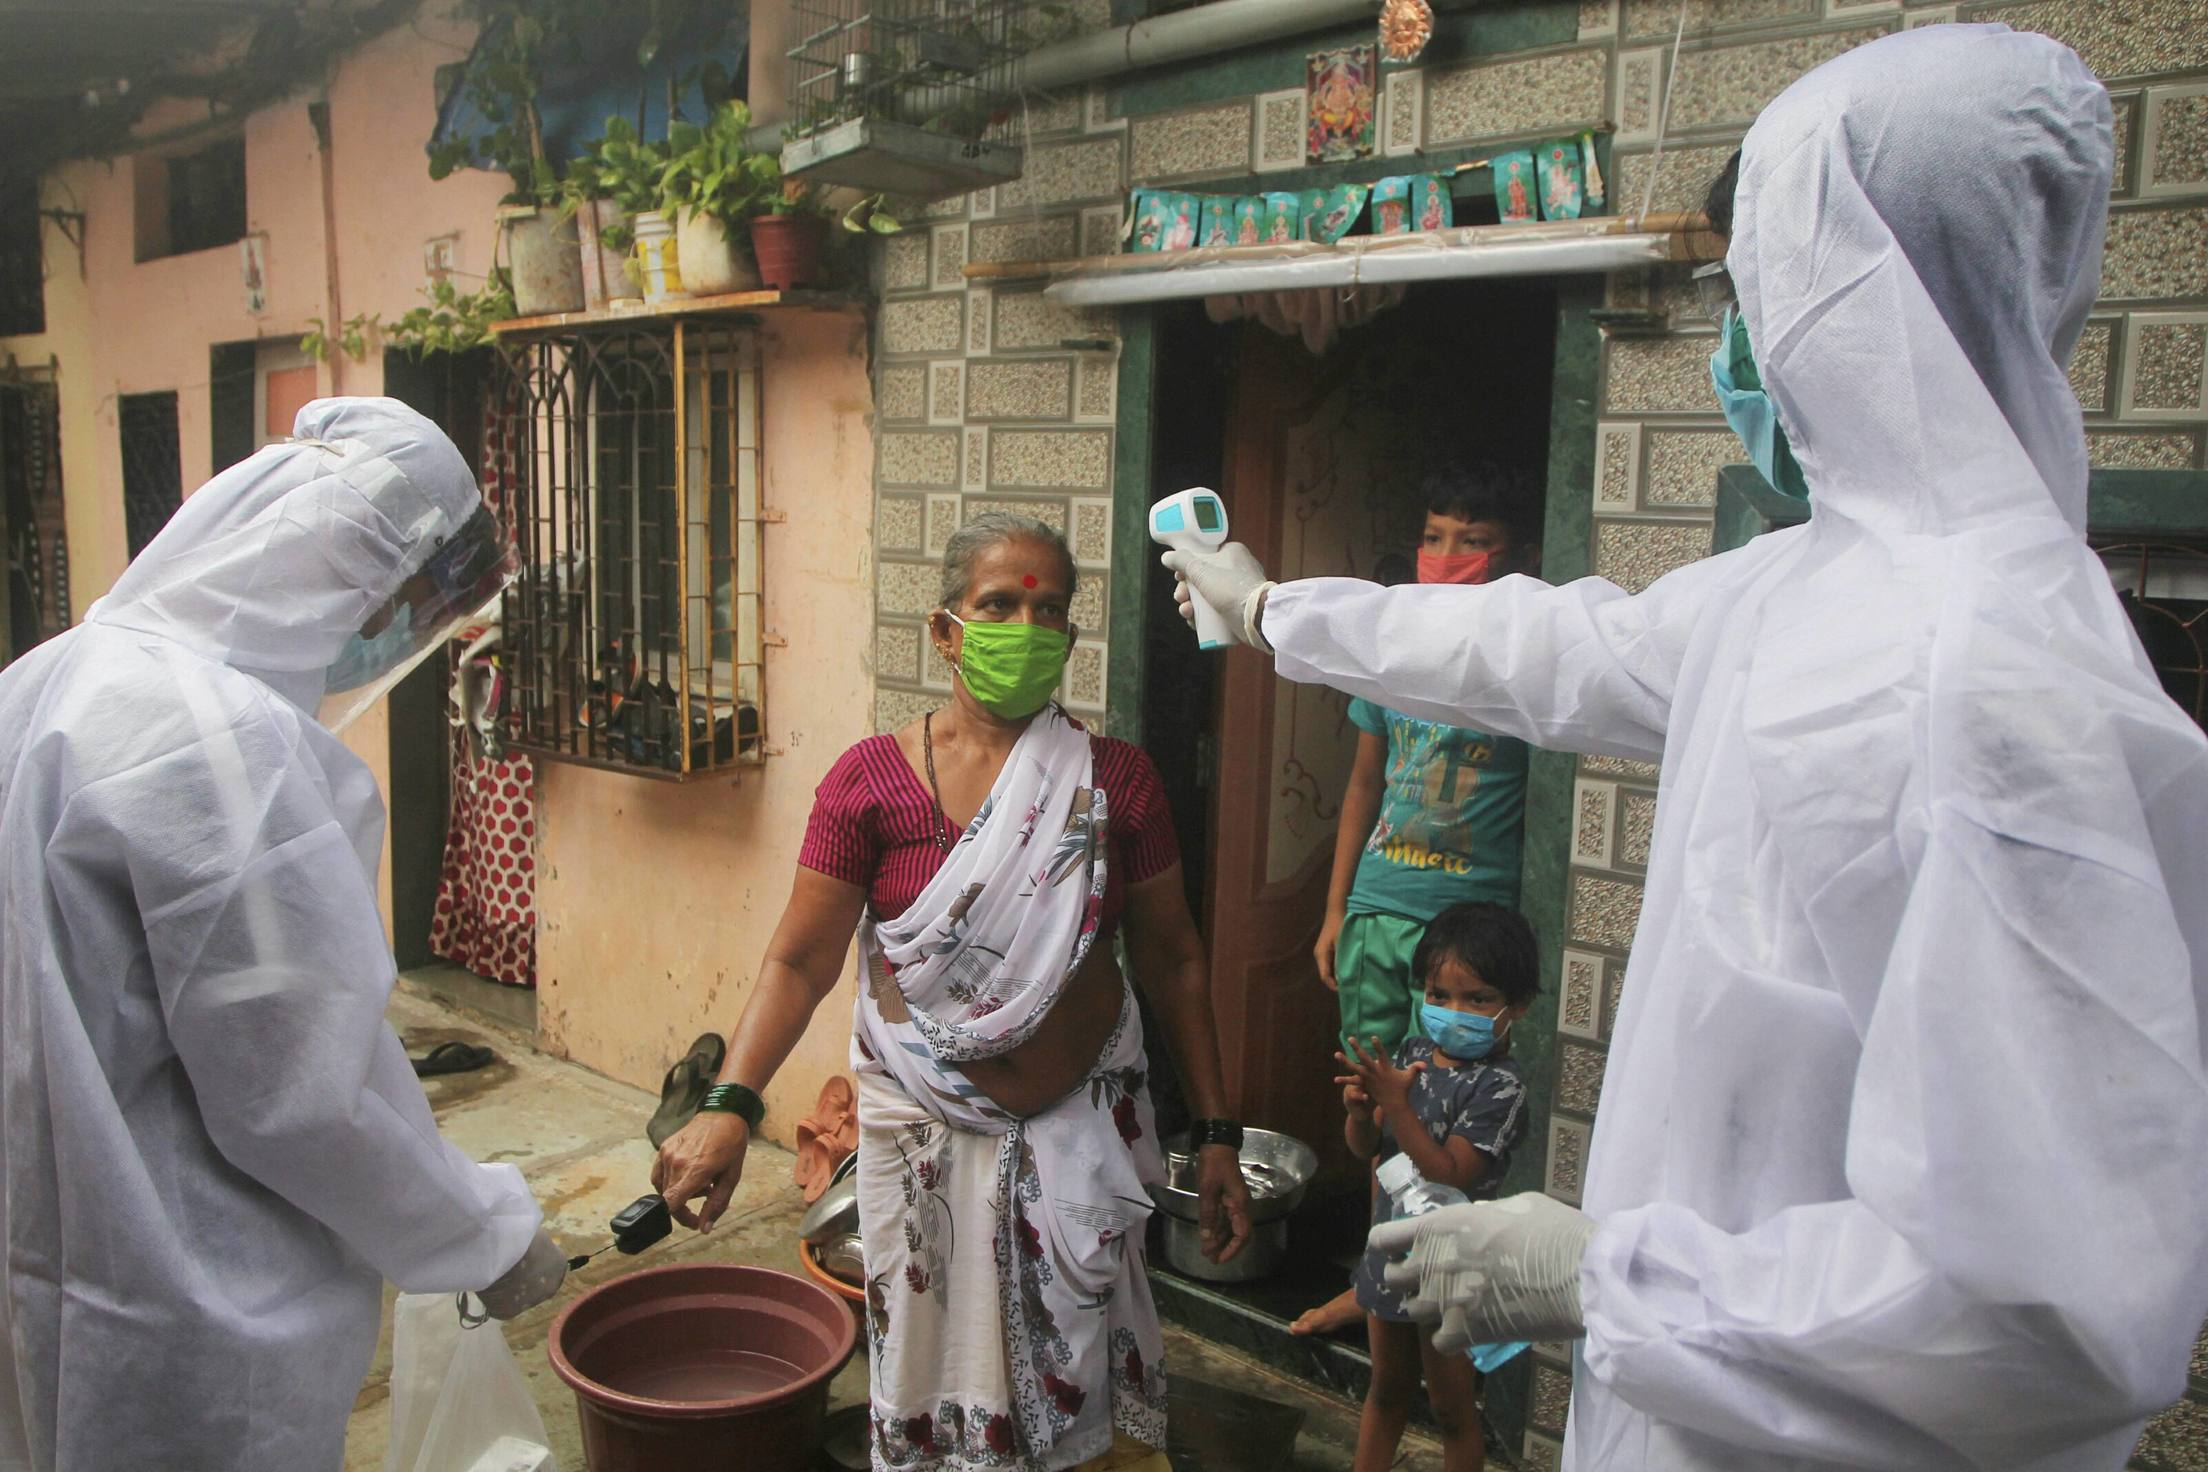 Health workers conduct door-to-door check-up at Shivaji Nagar slum for Covid-19 infection, in Mumbai, Wednesday, July 1, 2020.